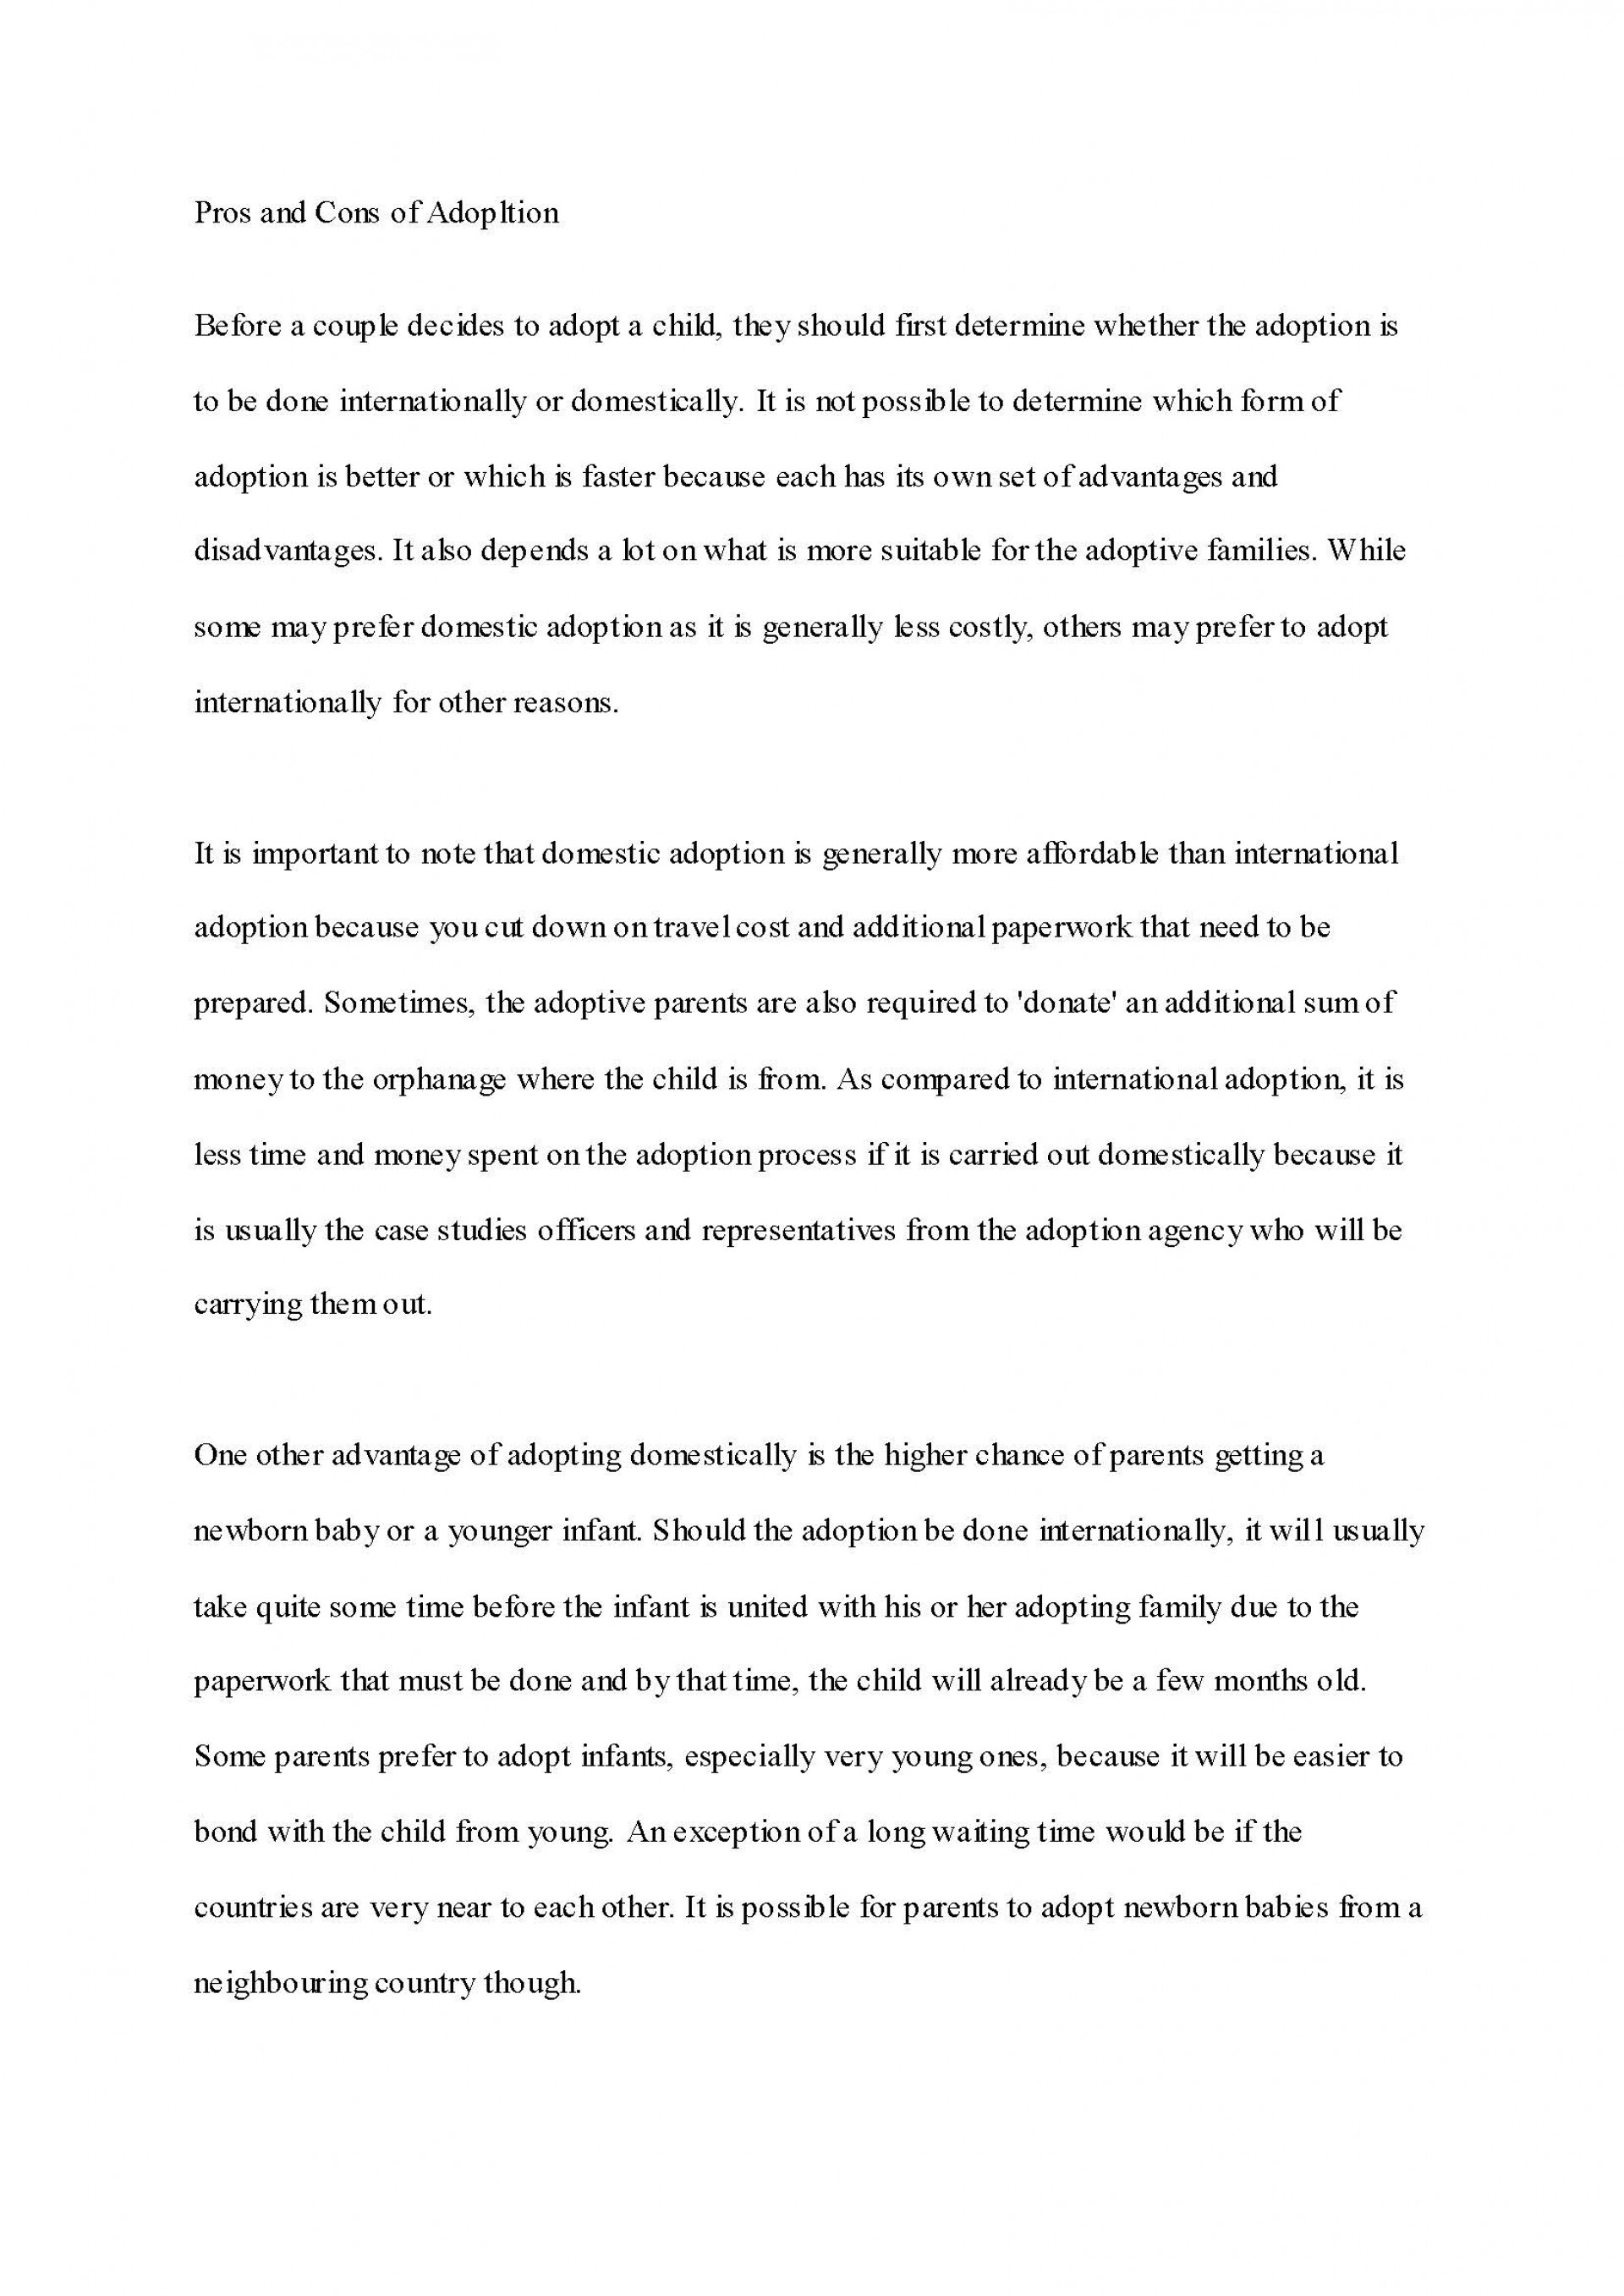 016 Examples Of Persuasive Essays Essay Example Adoption Excellent For Fifth Graders Written By 5th 3rd Grade 1920